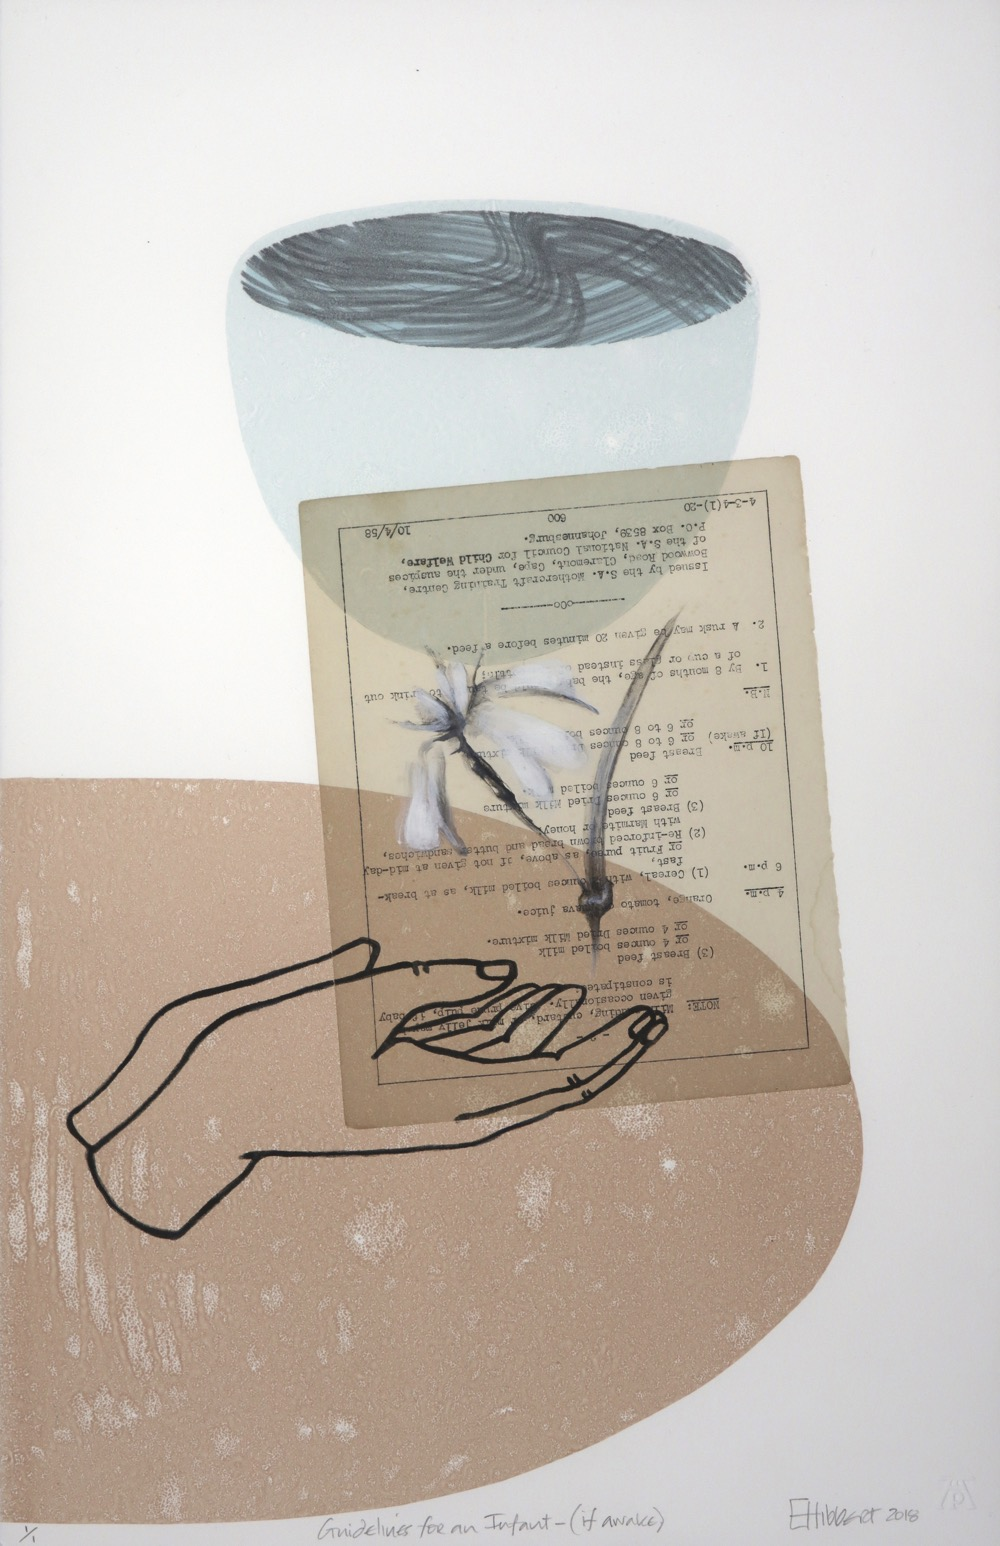 Outlines of cupped hands below white flower with  typed text page adhered to the print with semi-circular and bowl forms